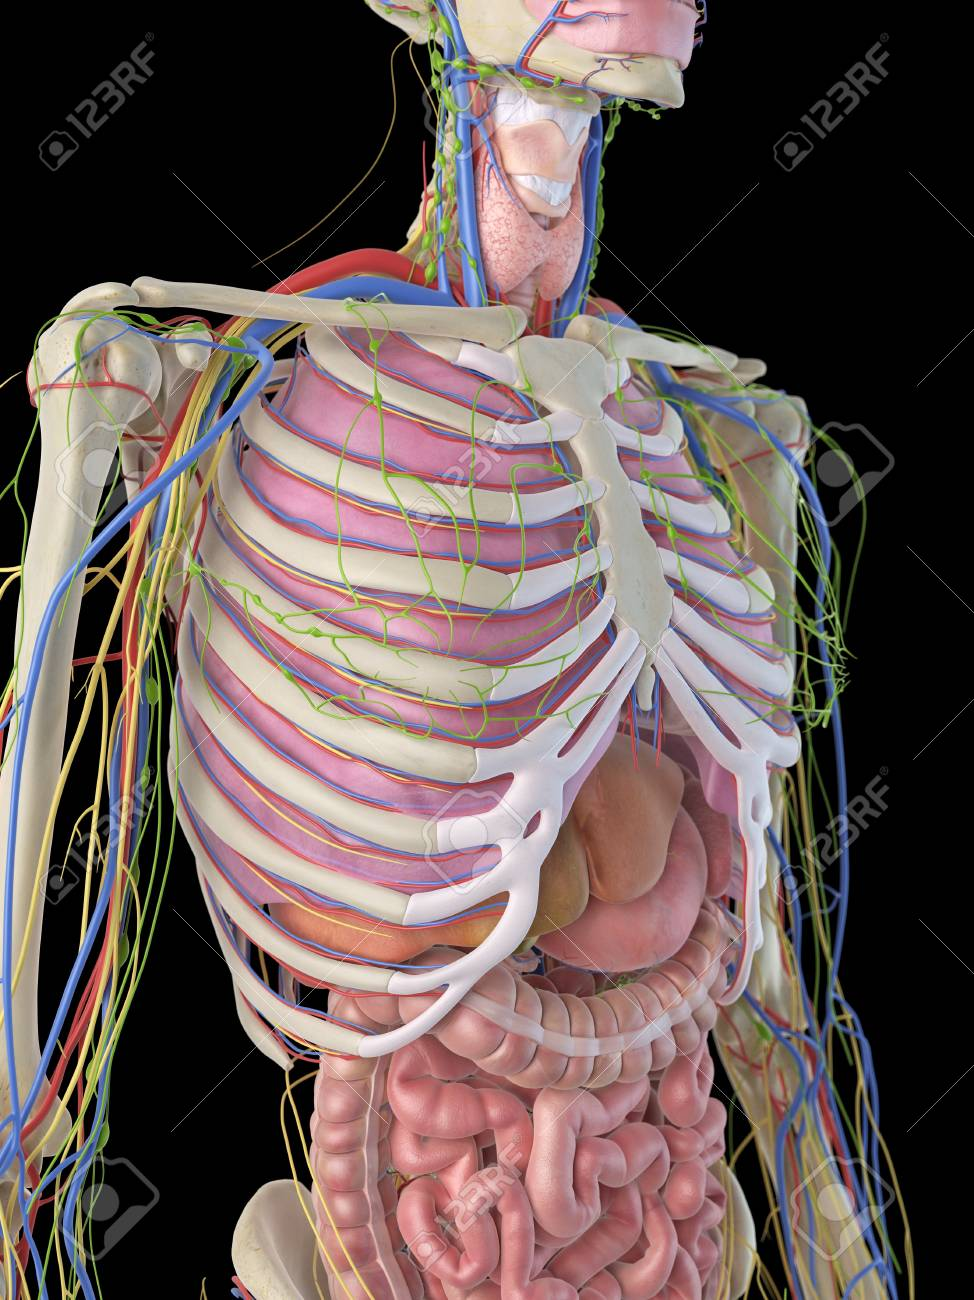 Human Ribcage And Organs, Artwork Stock Photo, Picture And Royalty ...